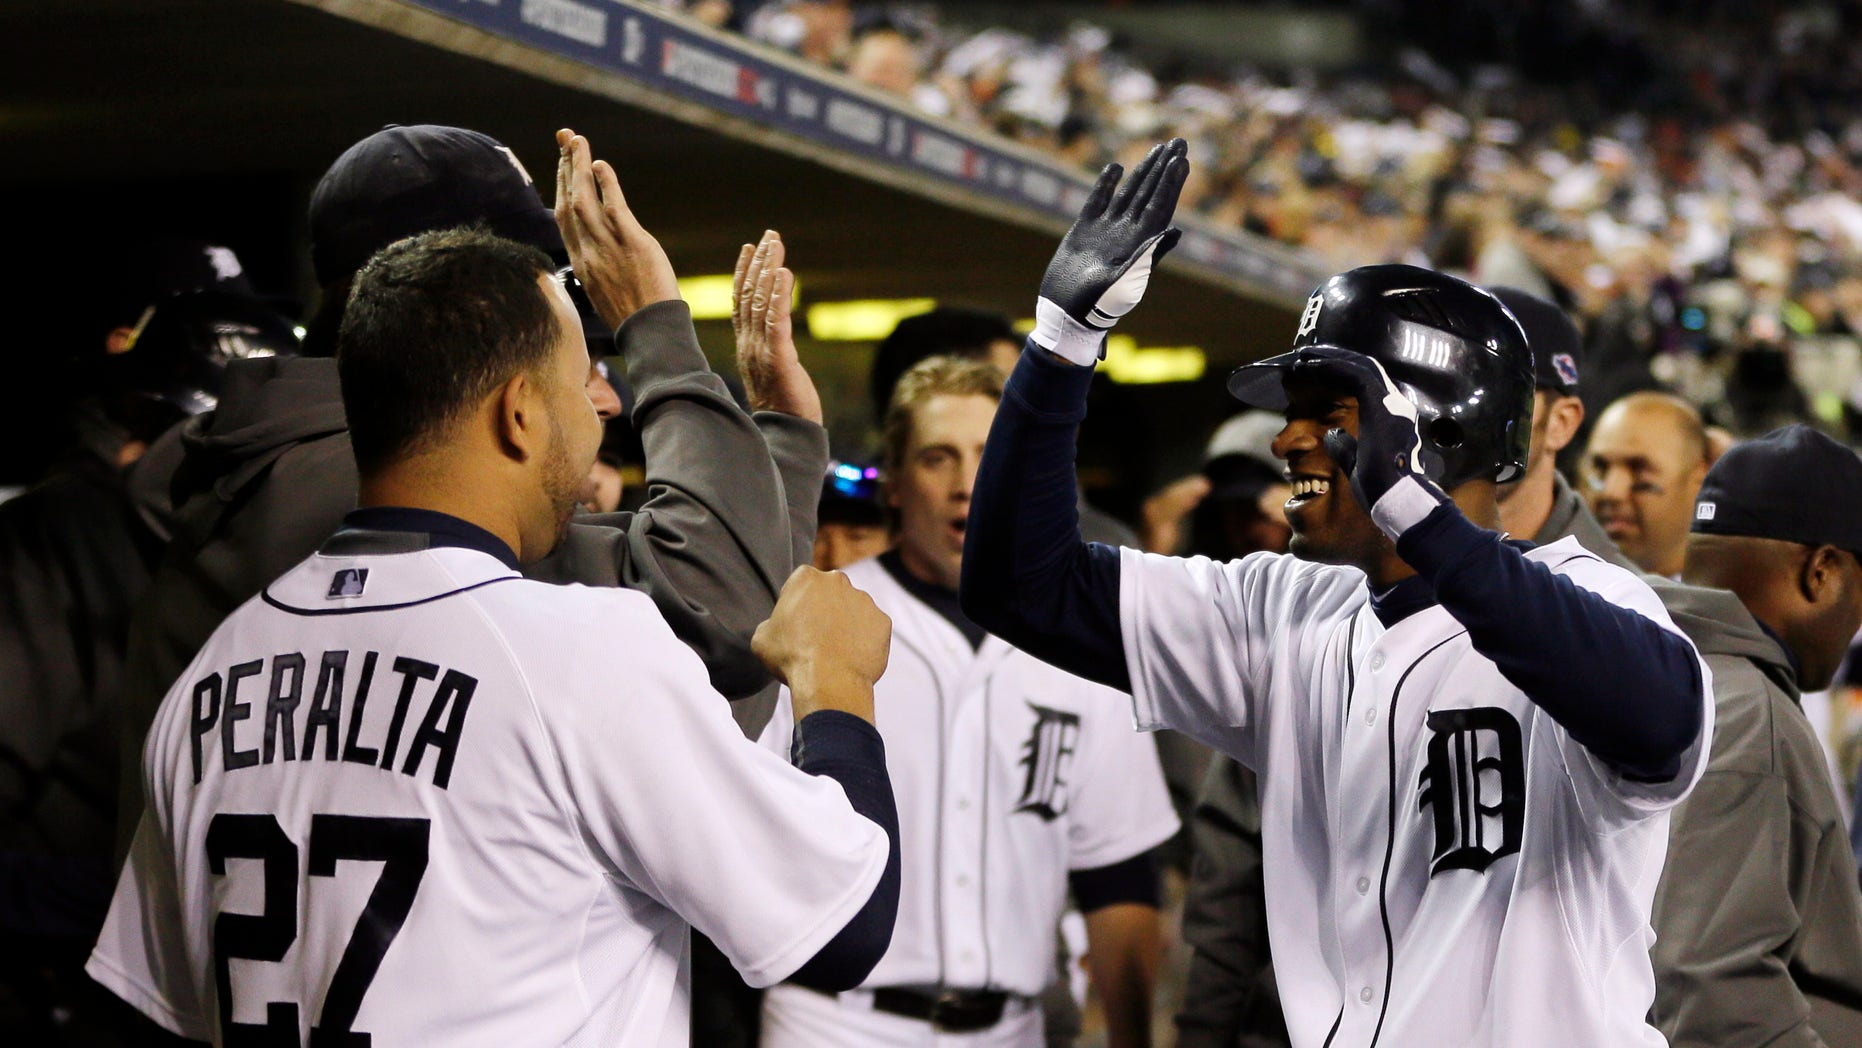 Oct. 18, 2012: Detroit Tigers' Austin Jackson celebrates after hitting a home run against the New York Yankees during Game 4 of the American League championship series in Detroit.